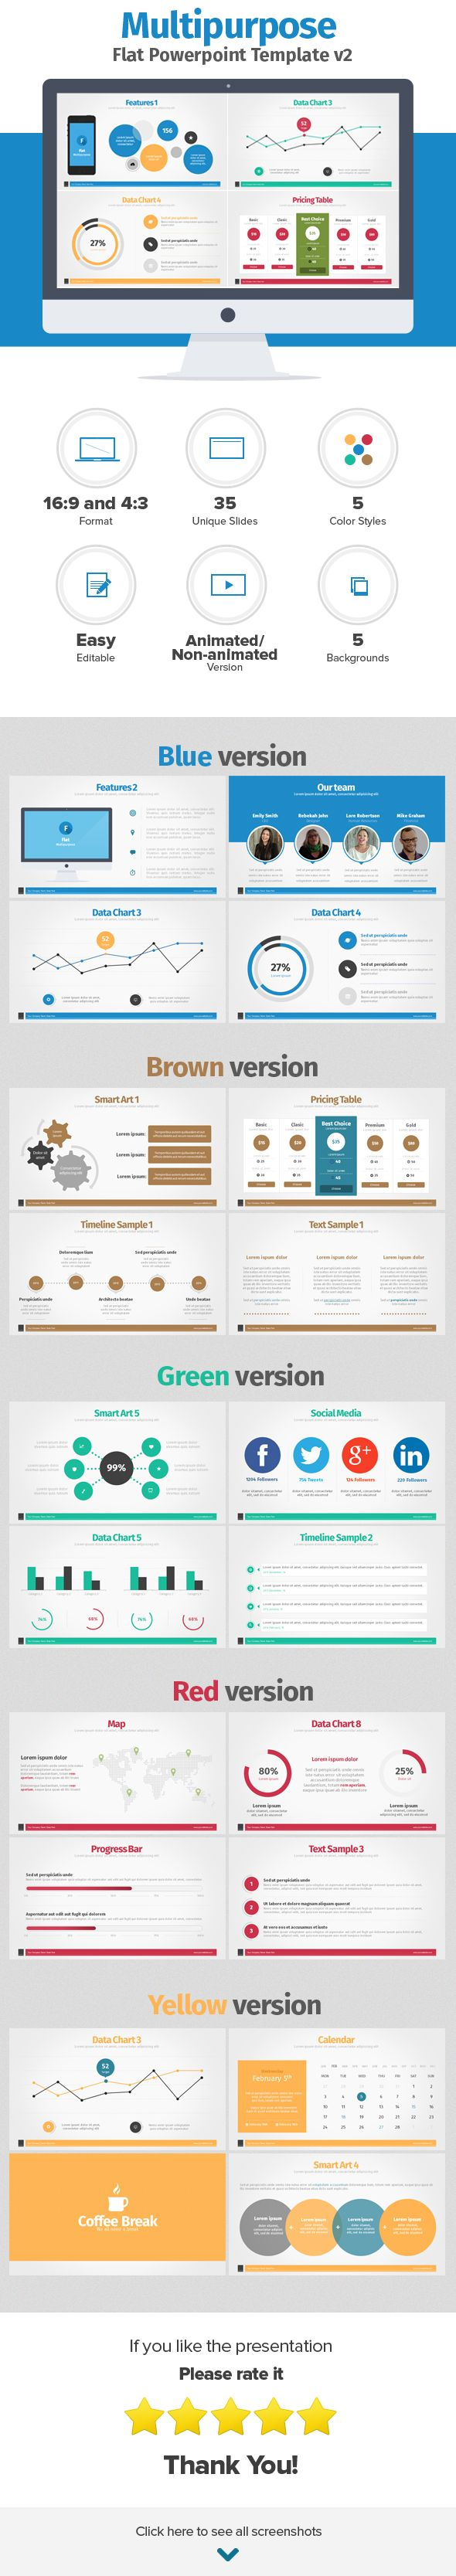 FLAT POWERPOINT PRESENTATION . Modern and simple Powerpoint Presentation Template with flat elements. All slides are fully editable. Easy to change colors, text, photos etc. Perfect for business, corporate and personal use.If you like this presentation don't forget to rate it. DOWNLOAD: http://graphicriver.net/item/multipurpose-flat-powerpoint-presentation-v2/6970058?ref=iDny  ★ ★ ★ ★ ★ #flatdesign #webdesign #powerpointtemplates #powerpointpresentation #powerpointdesign  #infographic